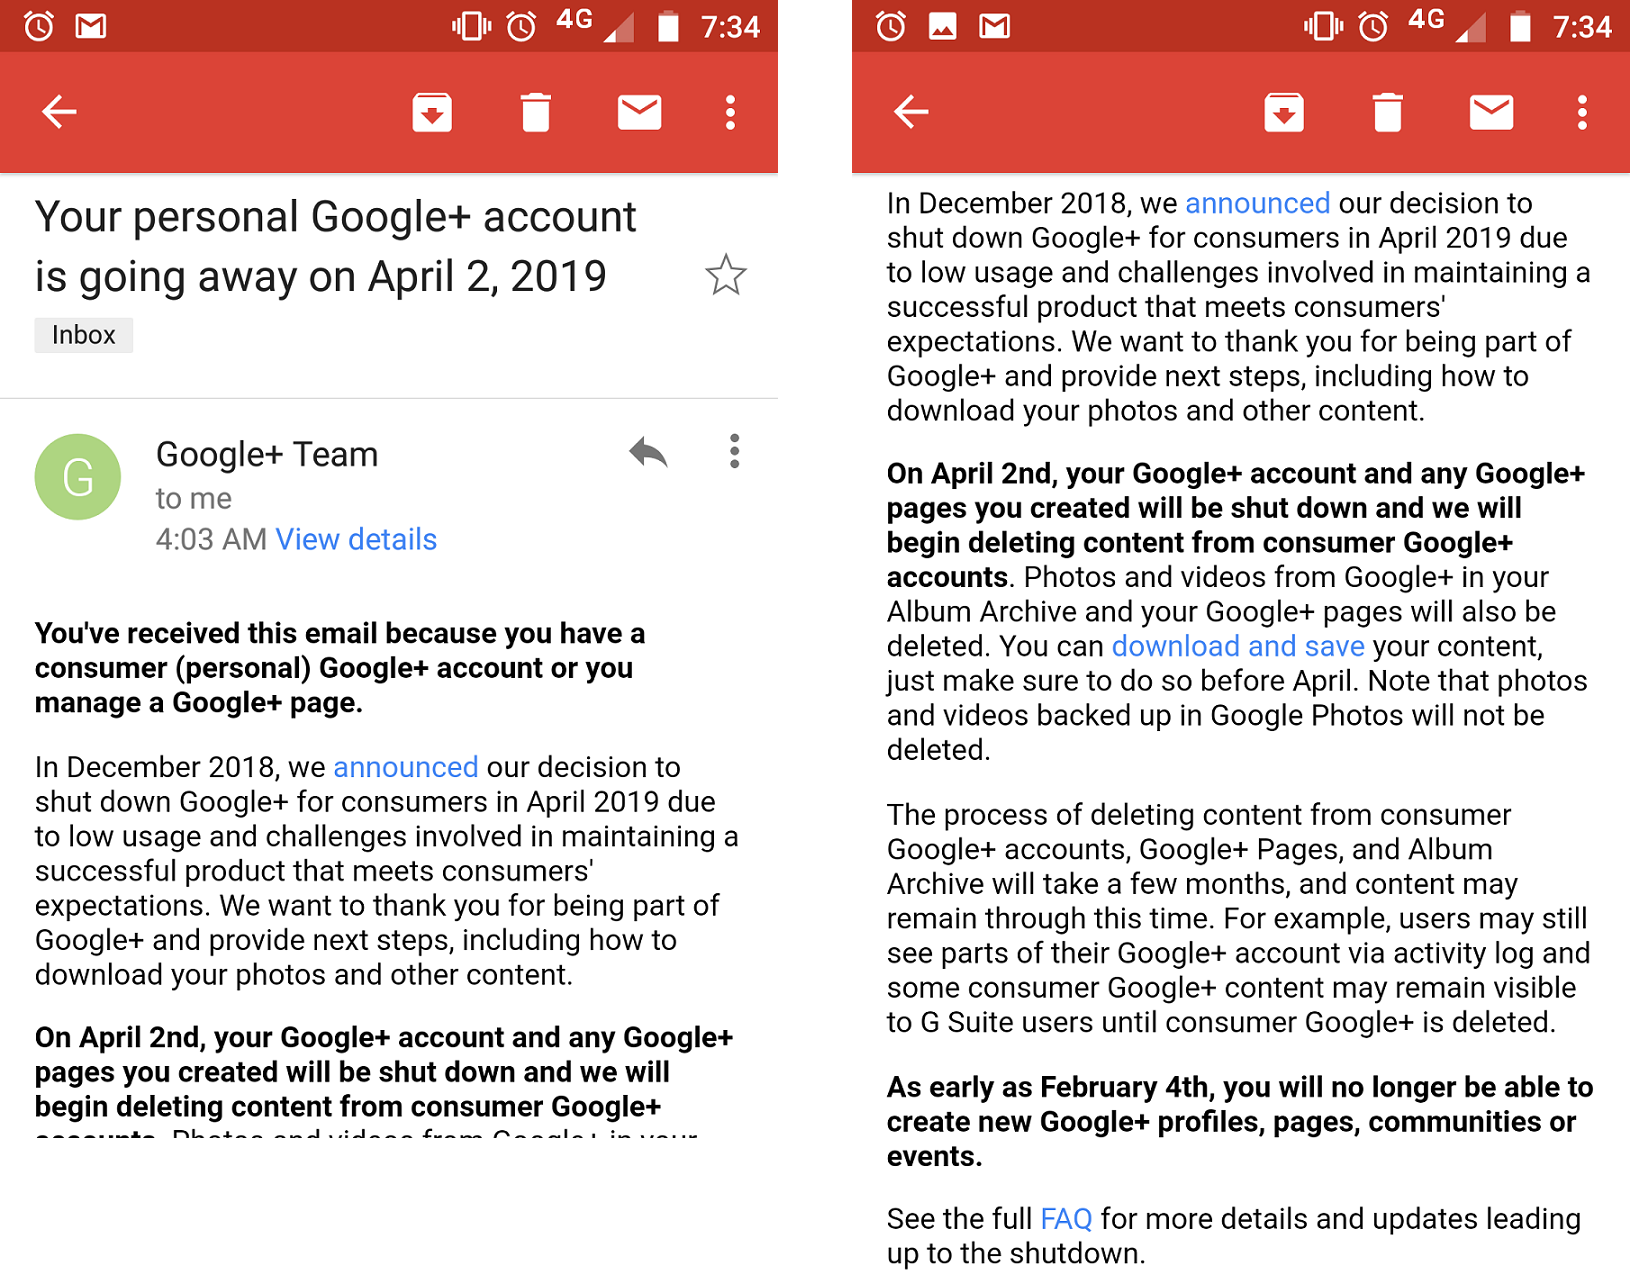 Google+ for Consumers Will Shut Down on April 2